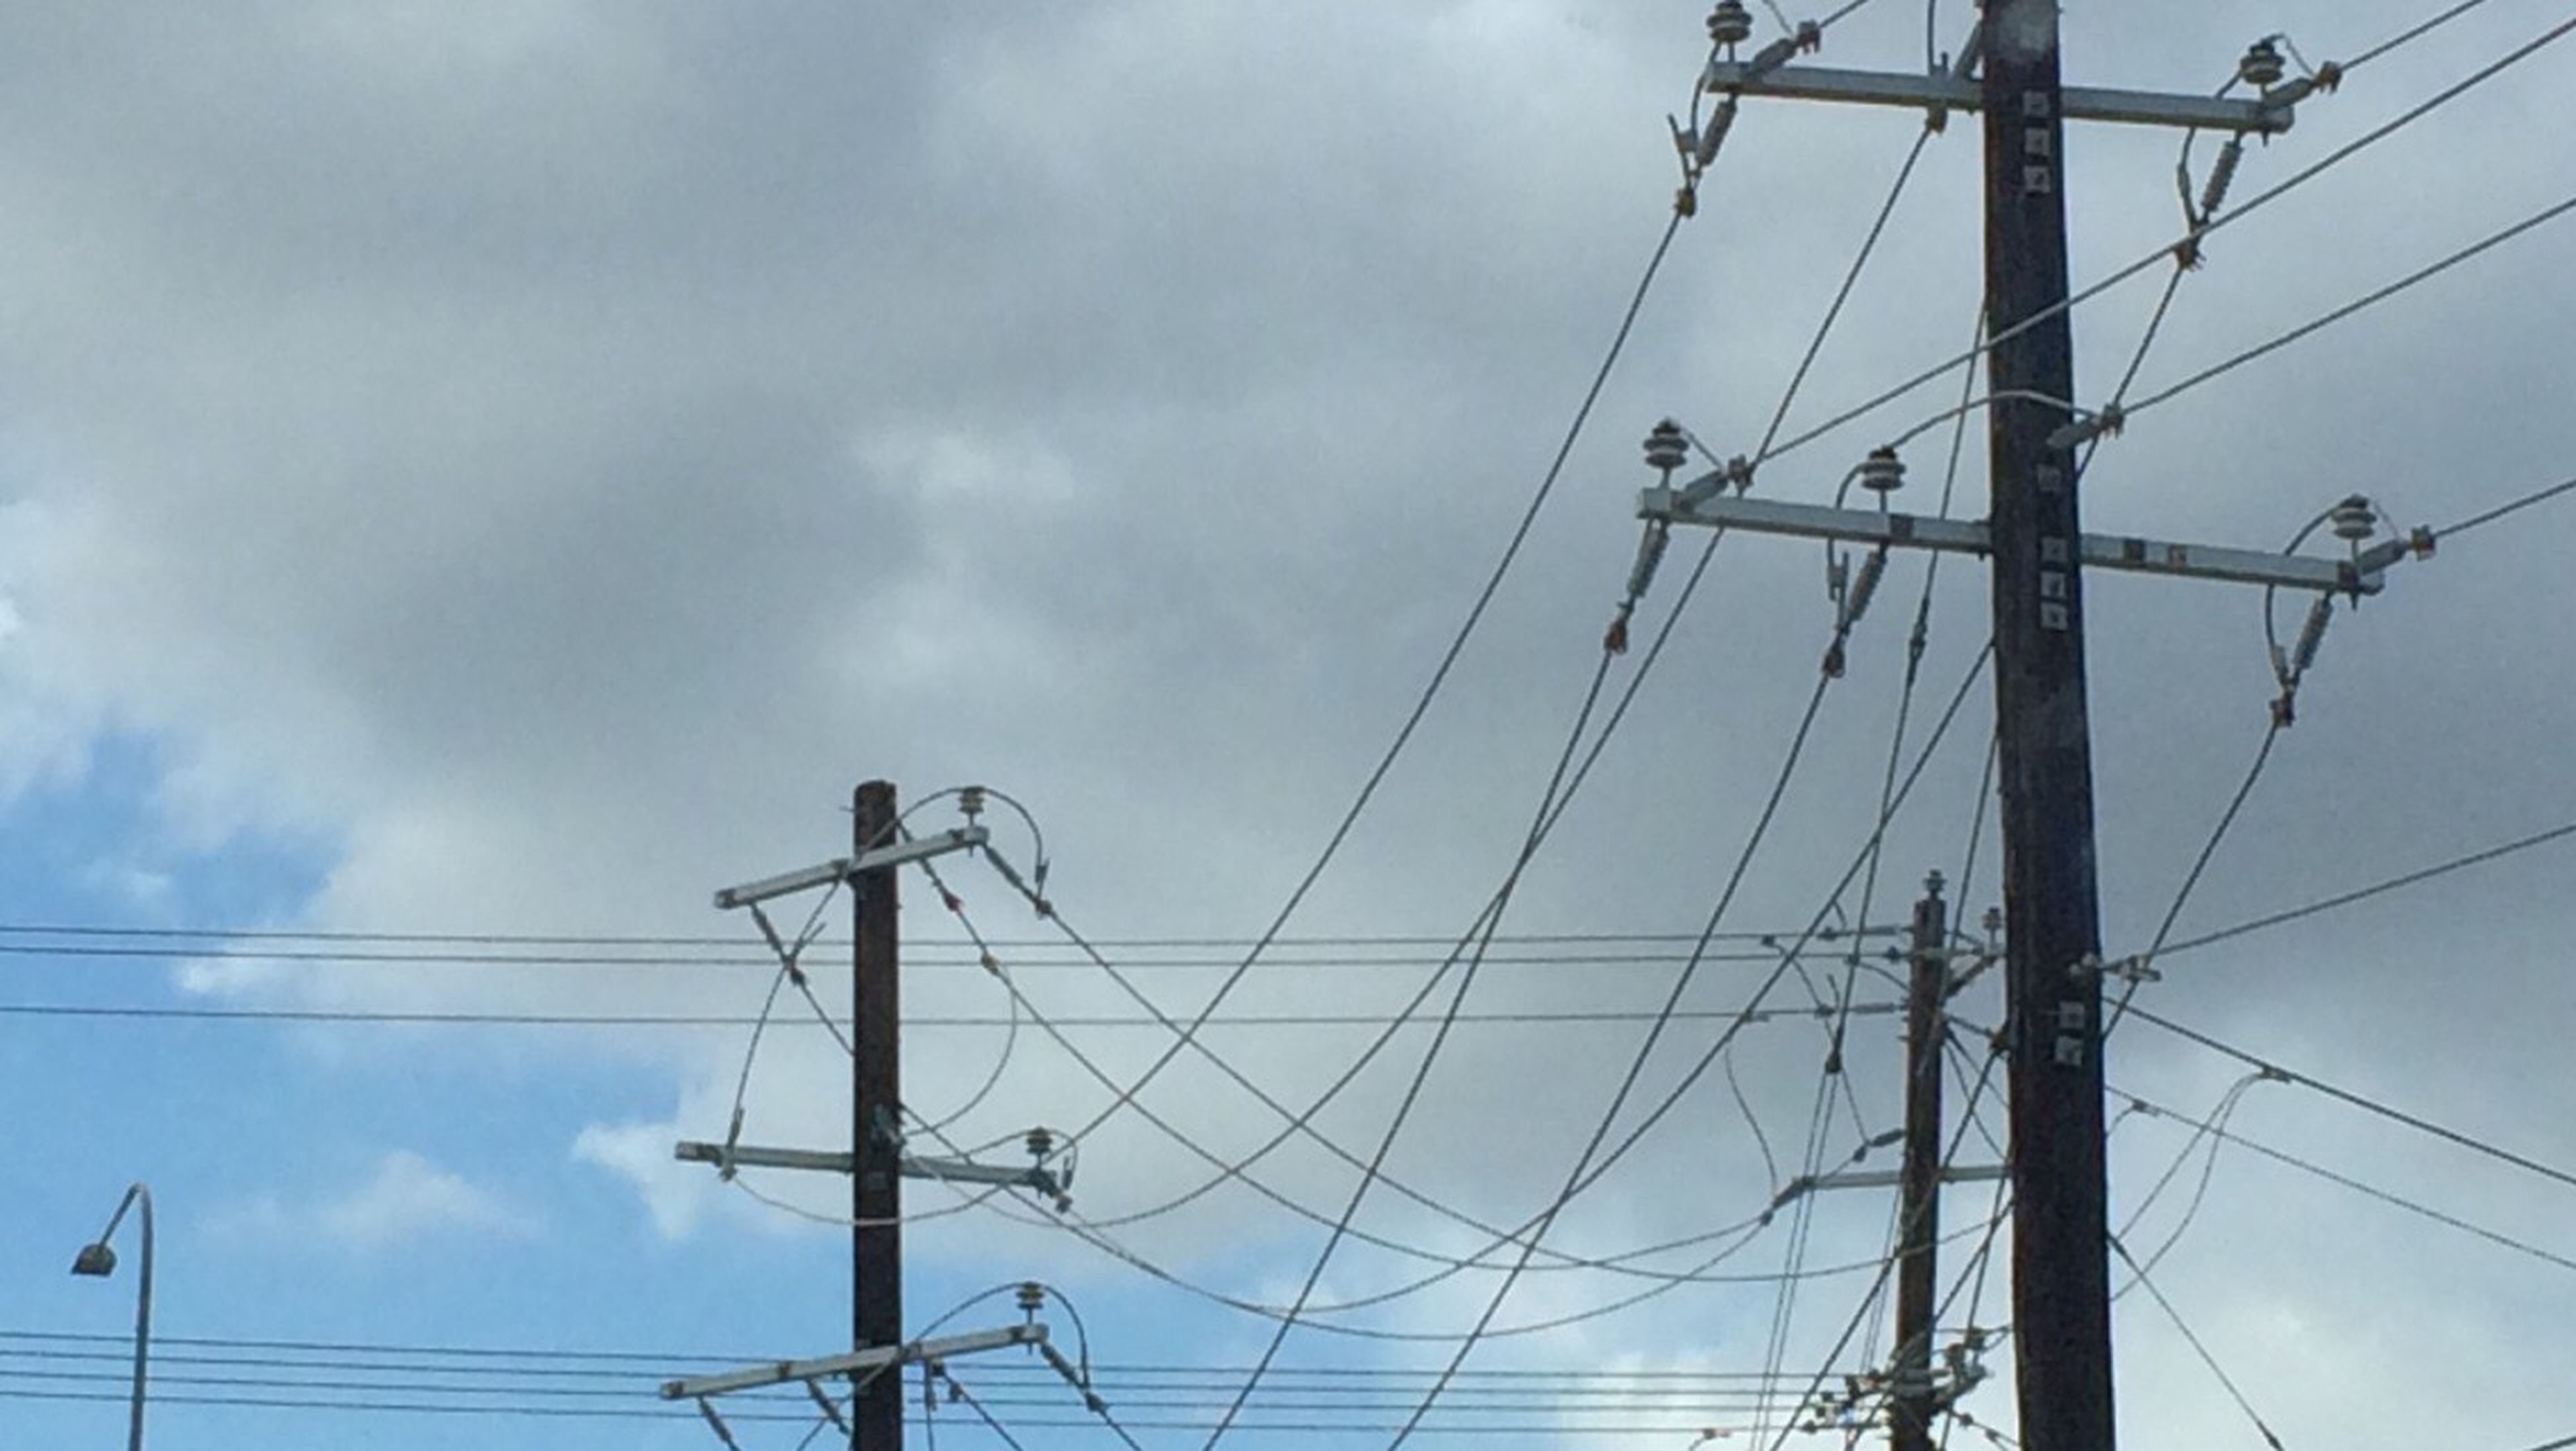 electricity pylon, electricity, power line, connection, power supply, low angle view, cable, technology, fuel and power generation, sky, cloud, high section, day, power cable, pole, electricity tower, outdoors, telephone line, nature, pylon, telephone pole, cloud - sky, no people, tranquility, outline, cloudscape, tall